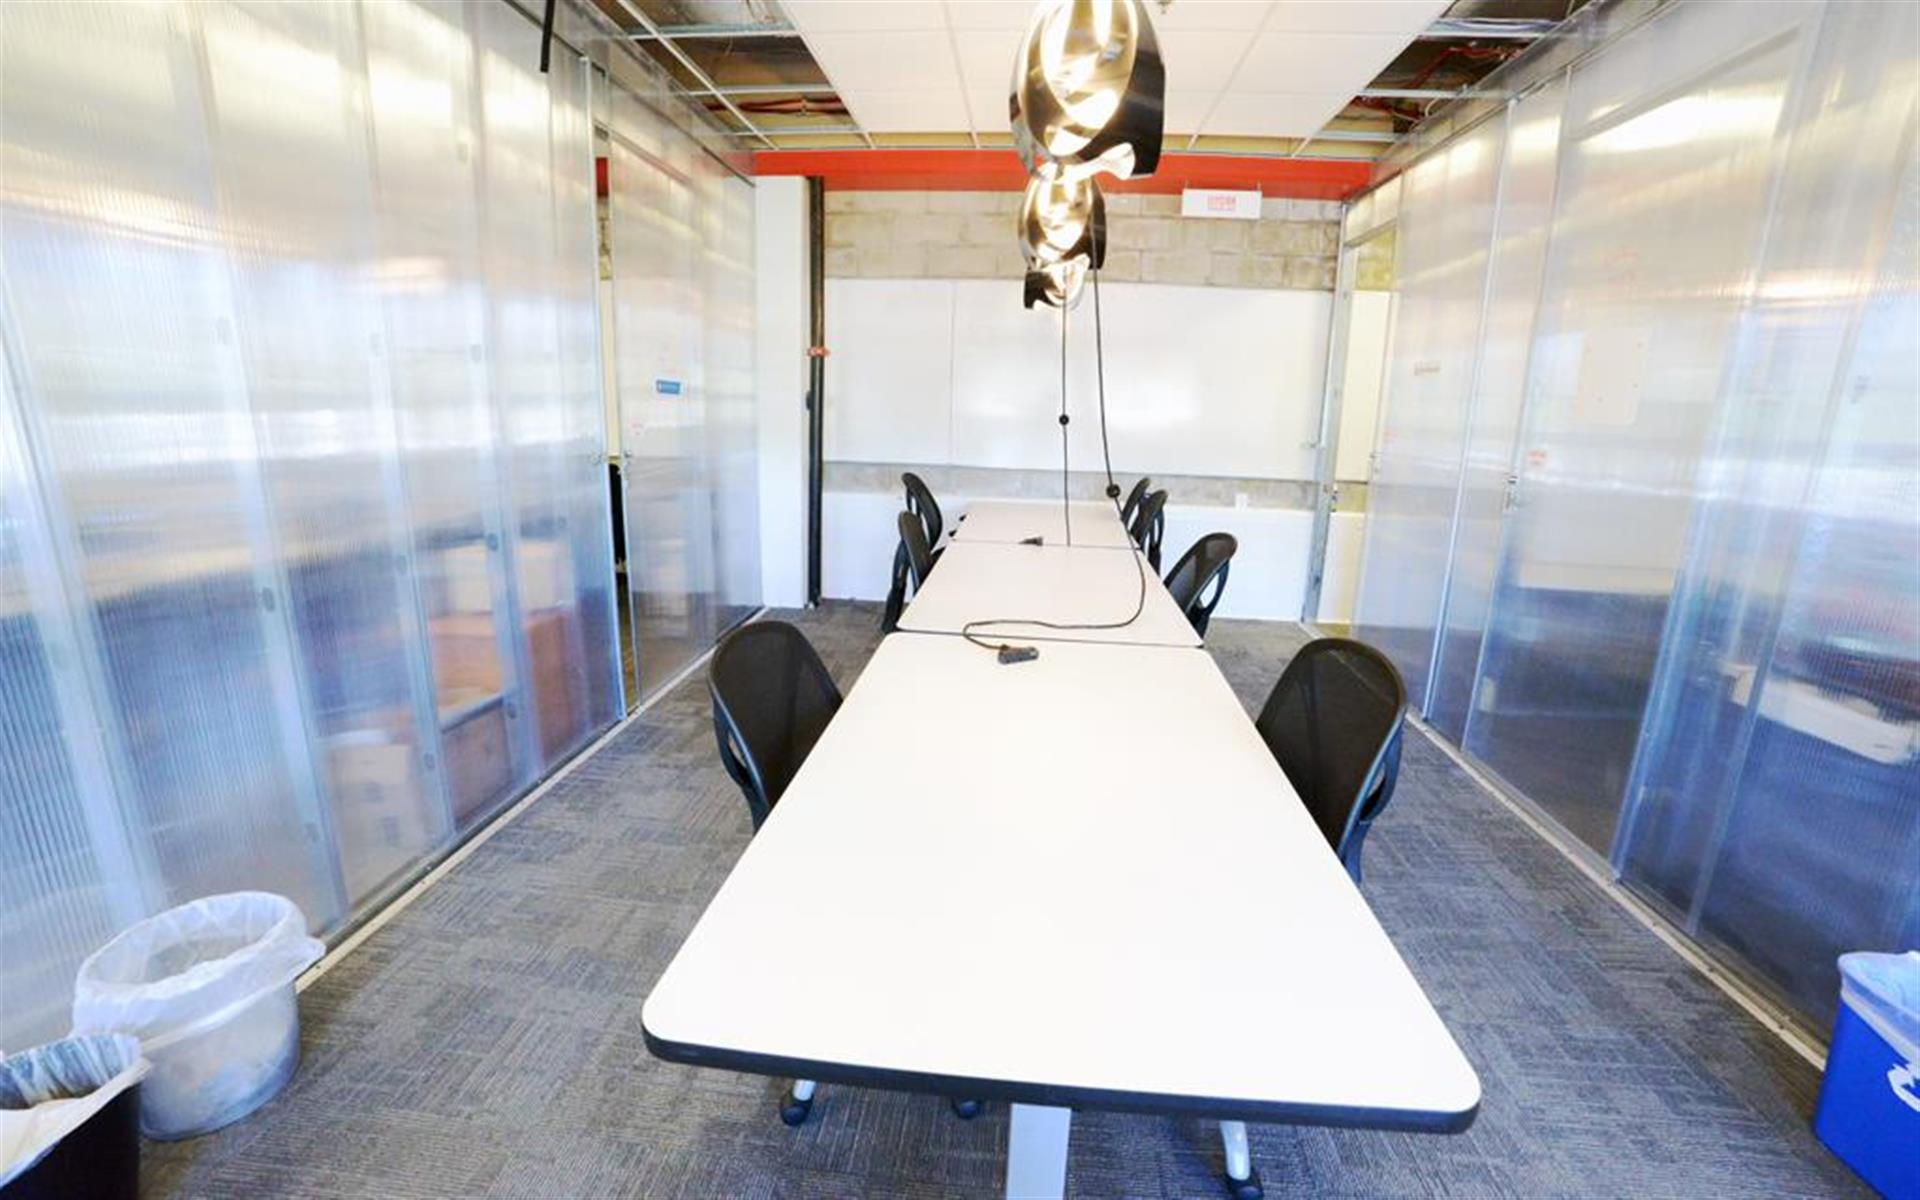 Mission 50 - NJ's Premier Coworking Space - Open Desk Coworking for 8